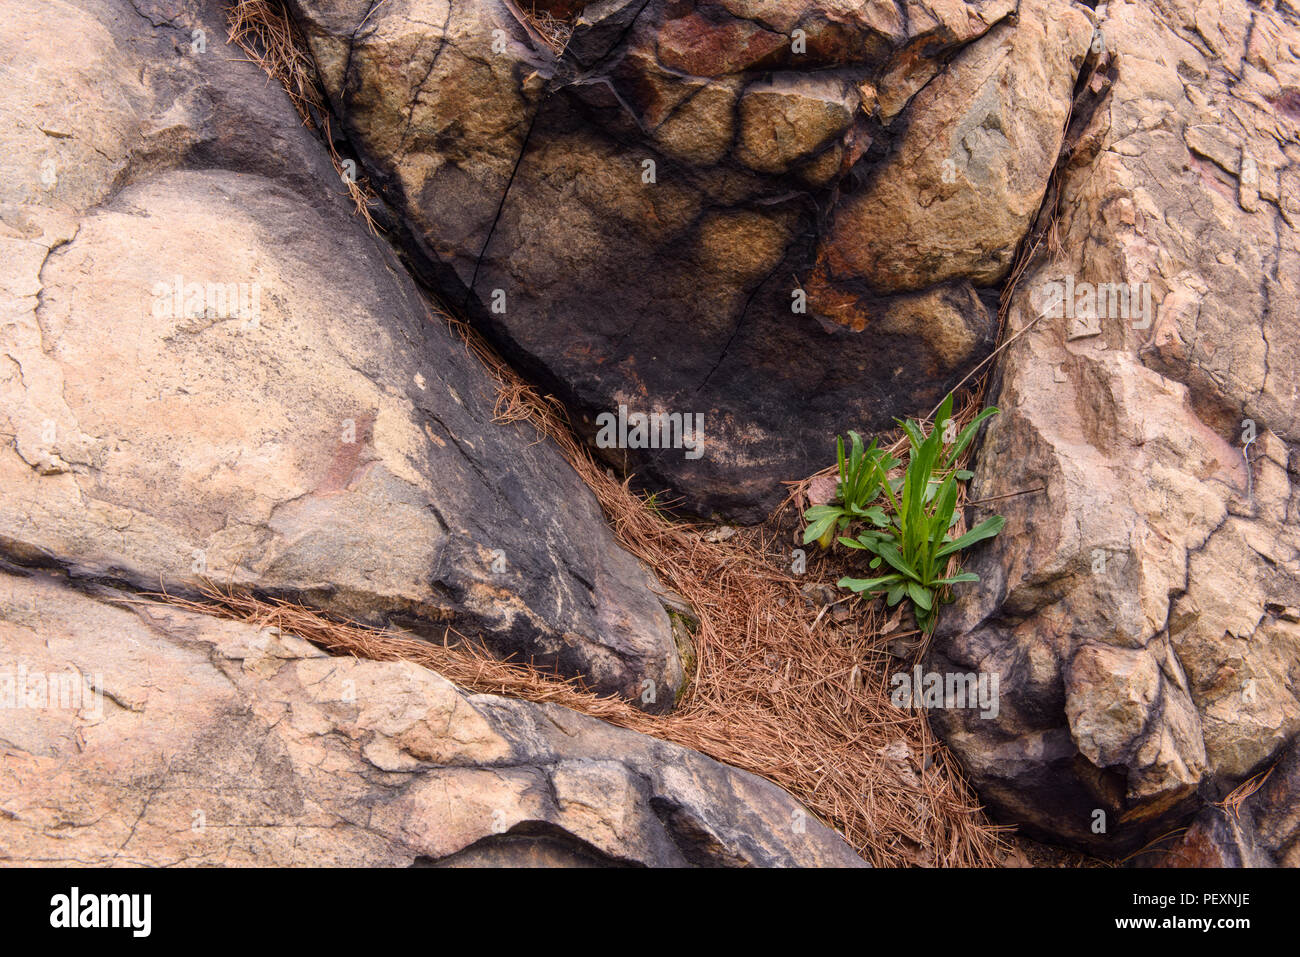 Rock outcrops and pine straw with hawkweed seedlings, Greater Sudbury, Ontario, Canada - Stock Image